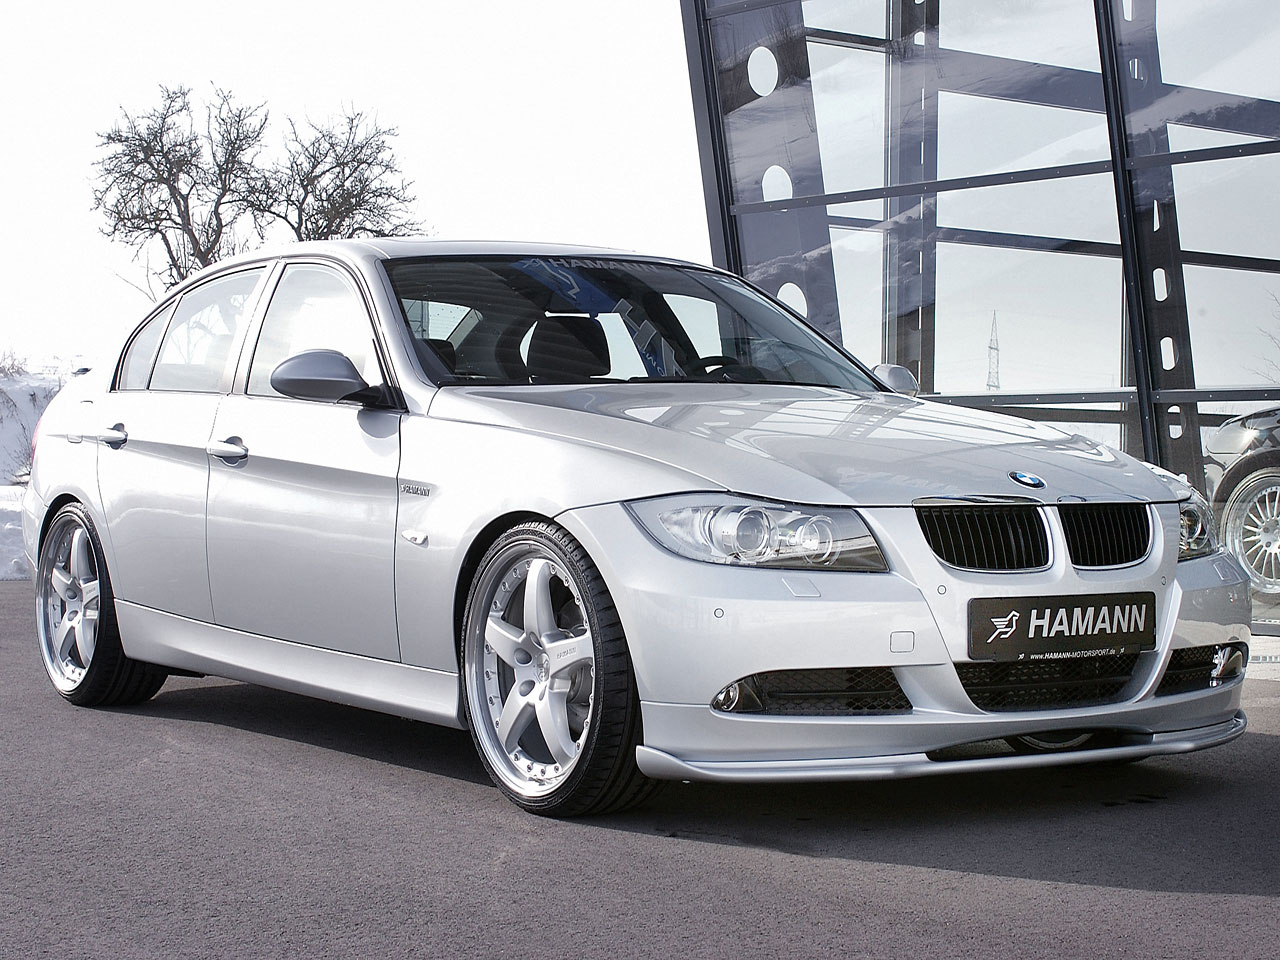 BMW 3 series 325xi 2009 photo - 5